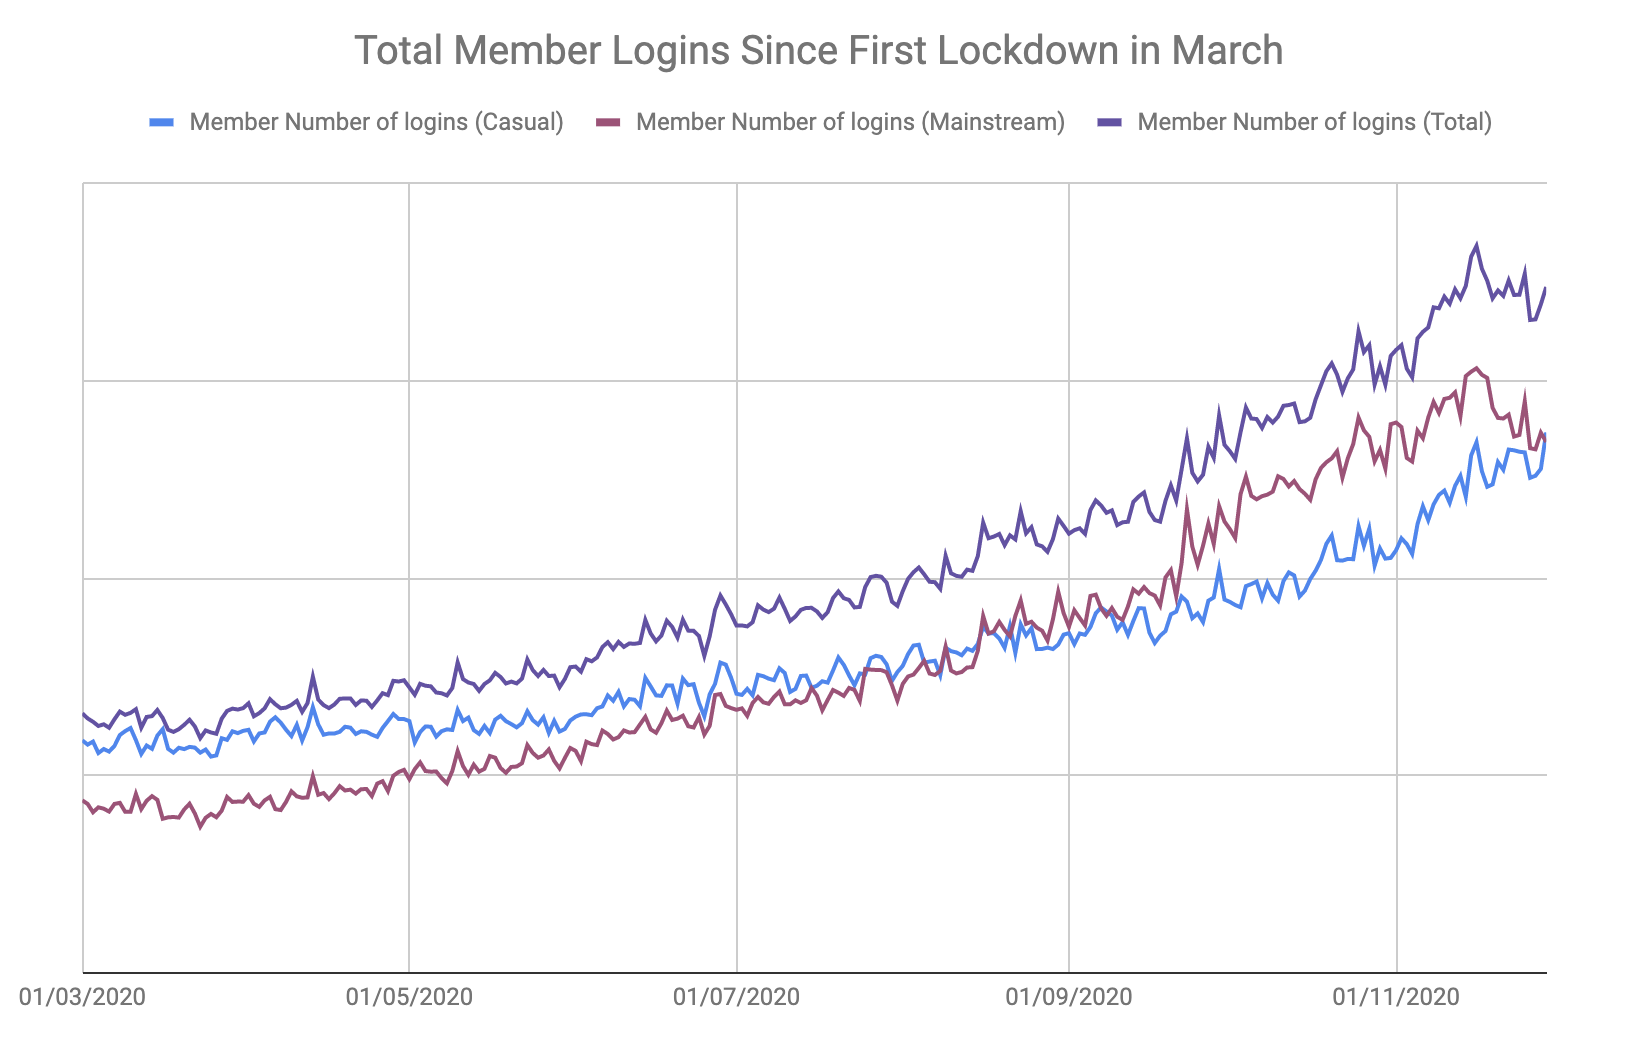 Increase in member logins since Covid-19 March lockdown